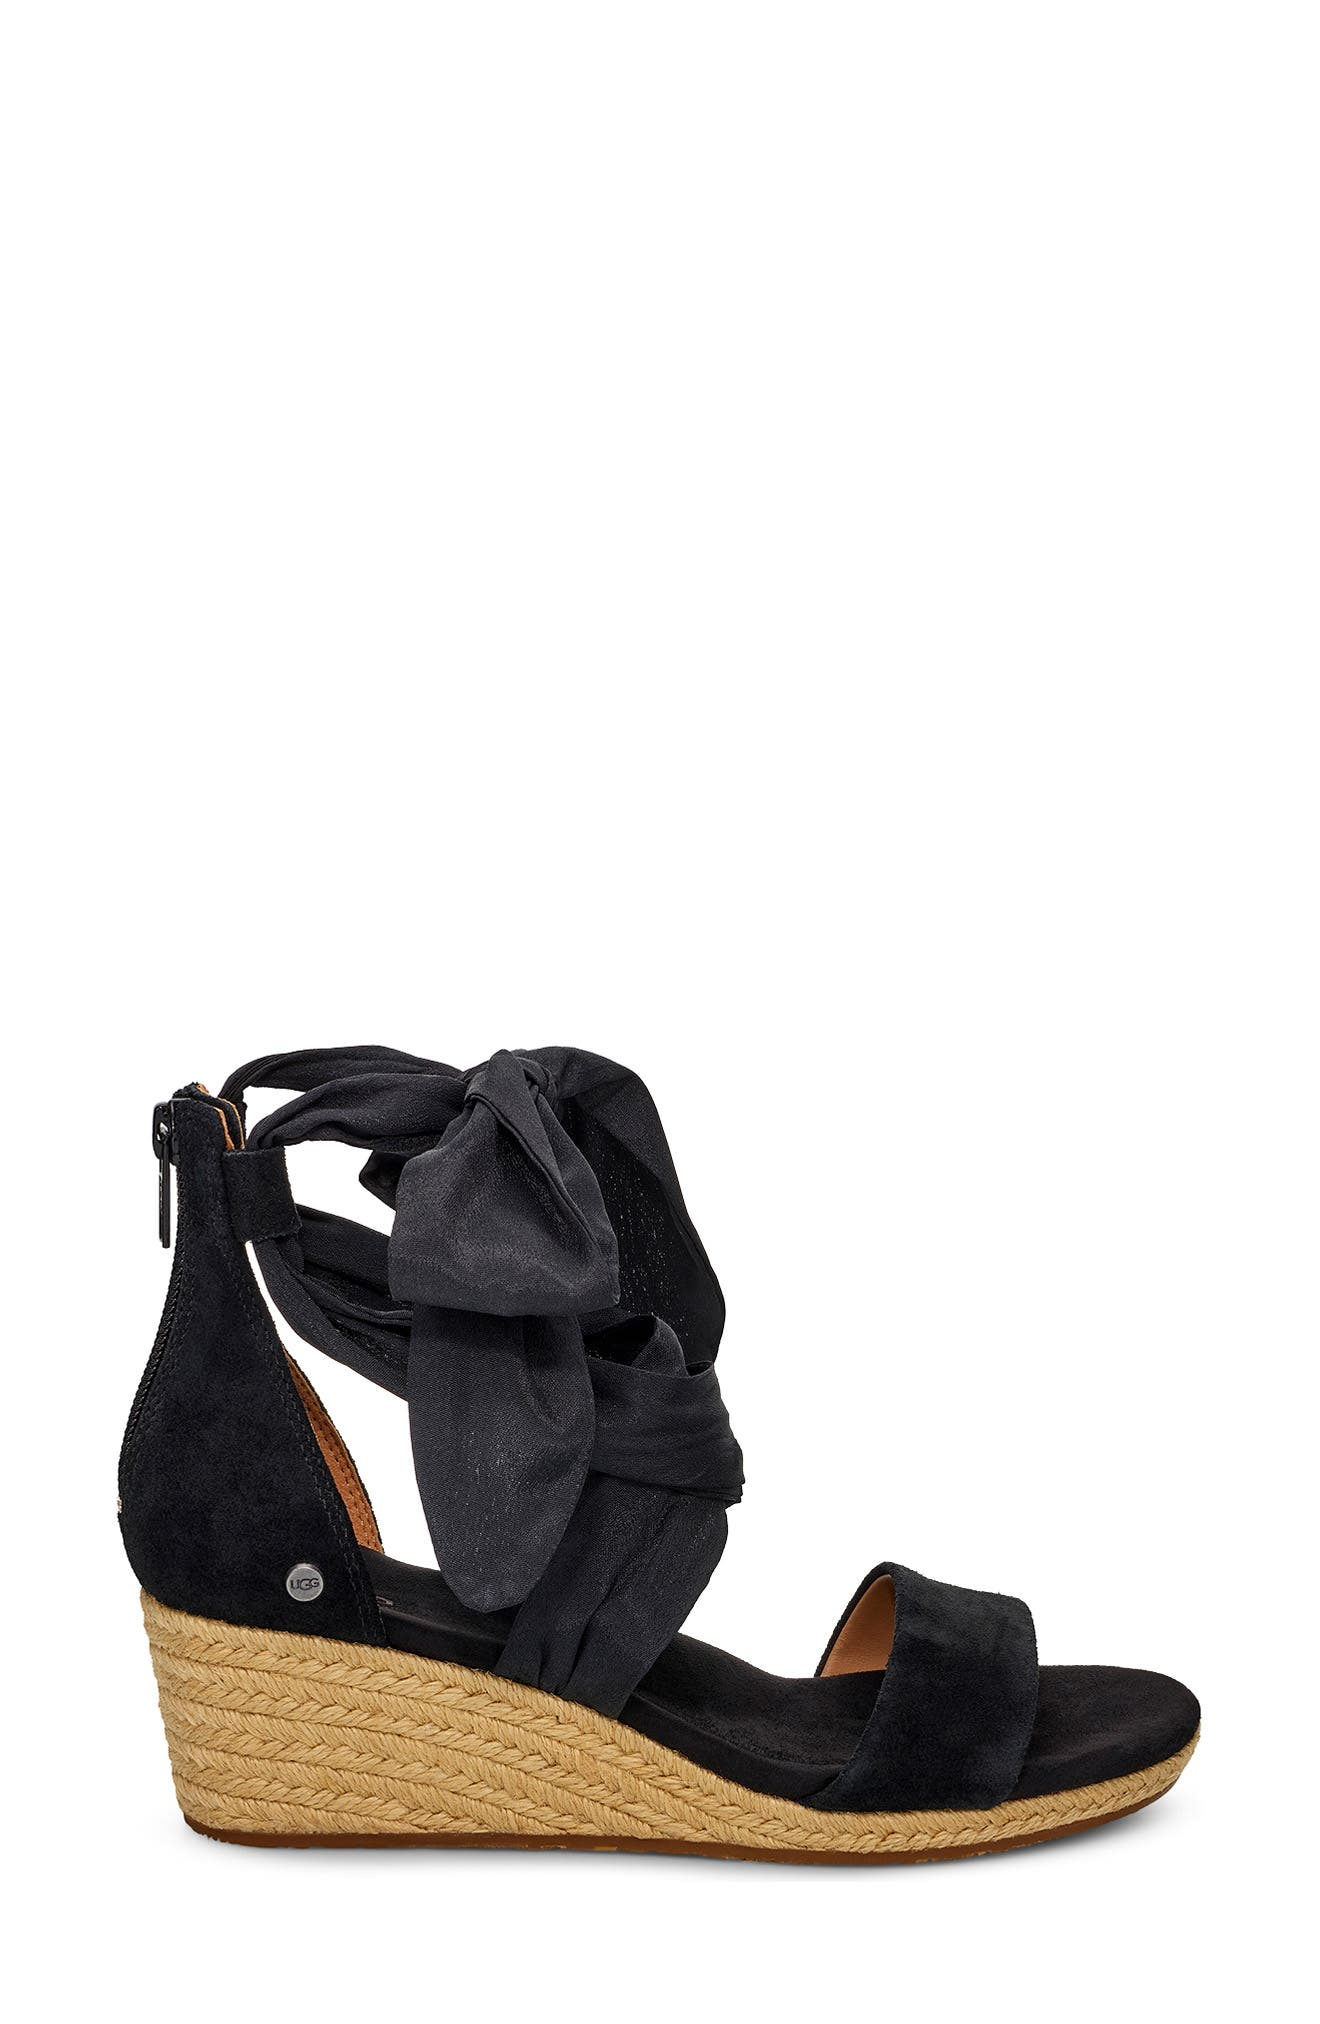 UGG<SUP>®</SUP>, Trina Ankle Tie Wedge Sandal, Alternate thumbnail 3, color, BLACK LEATHER